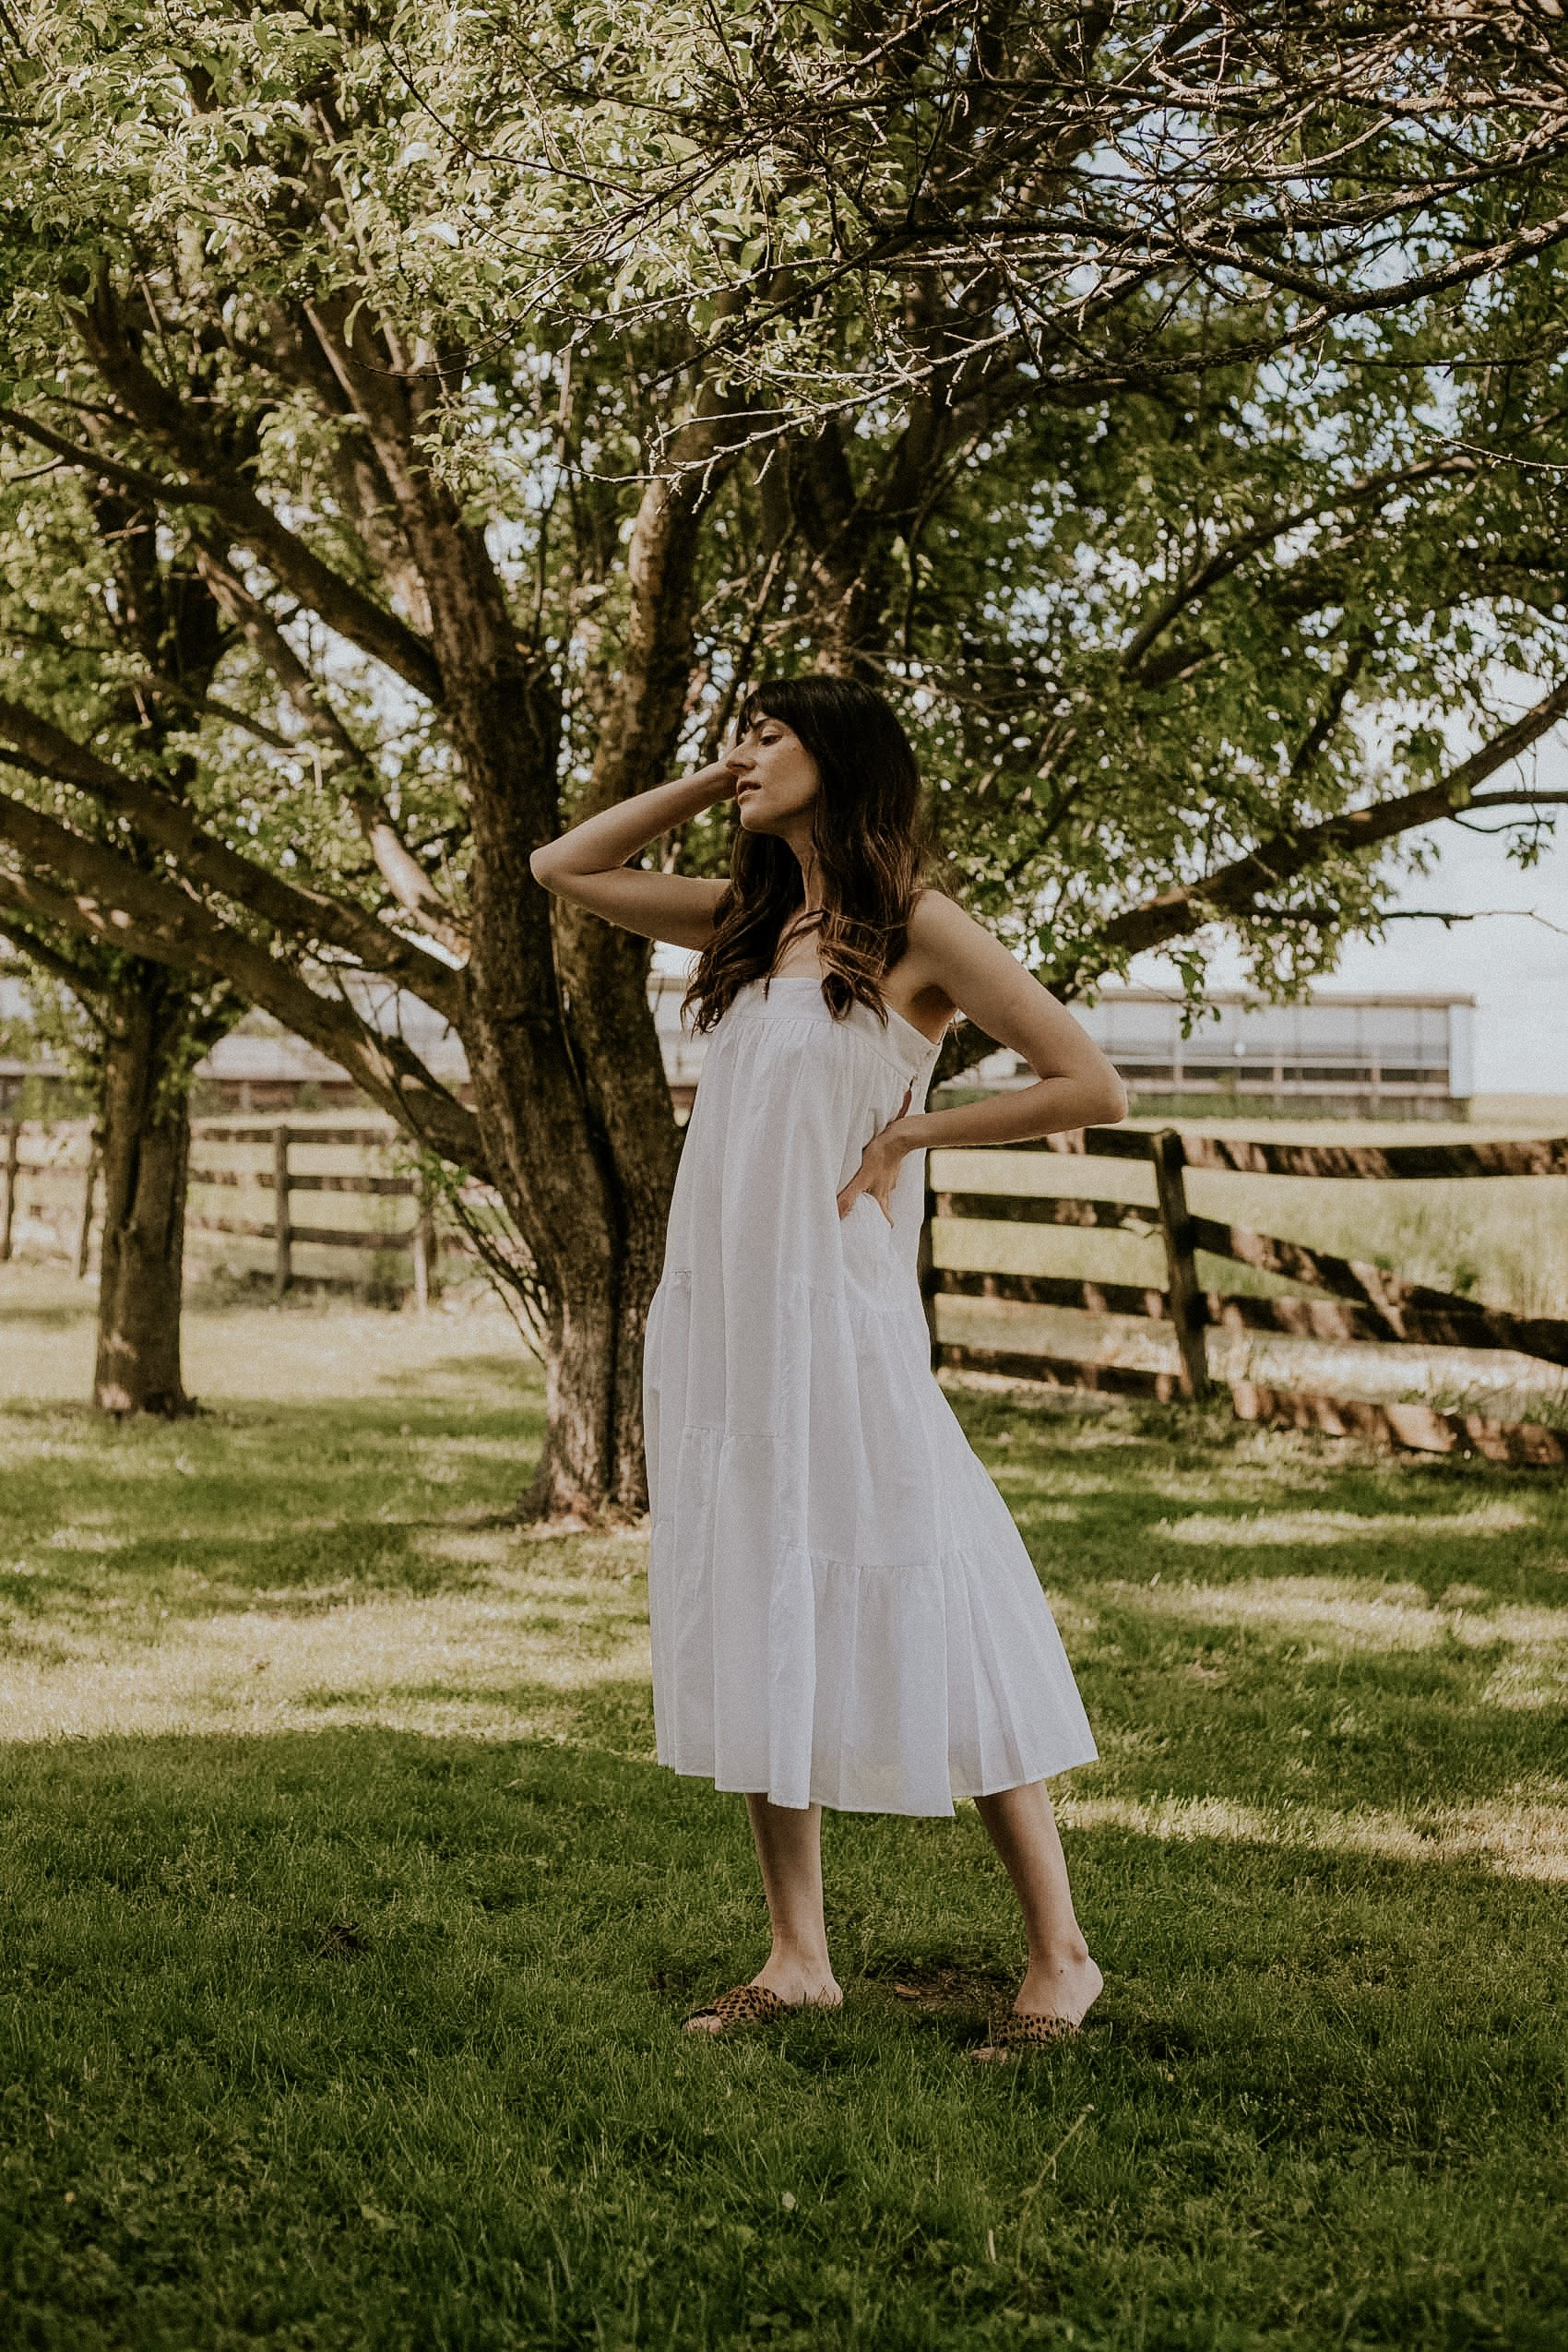 White Cotton/Linen Summer Dress with Cheetah print sandals on woman standing in field